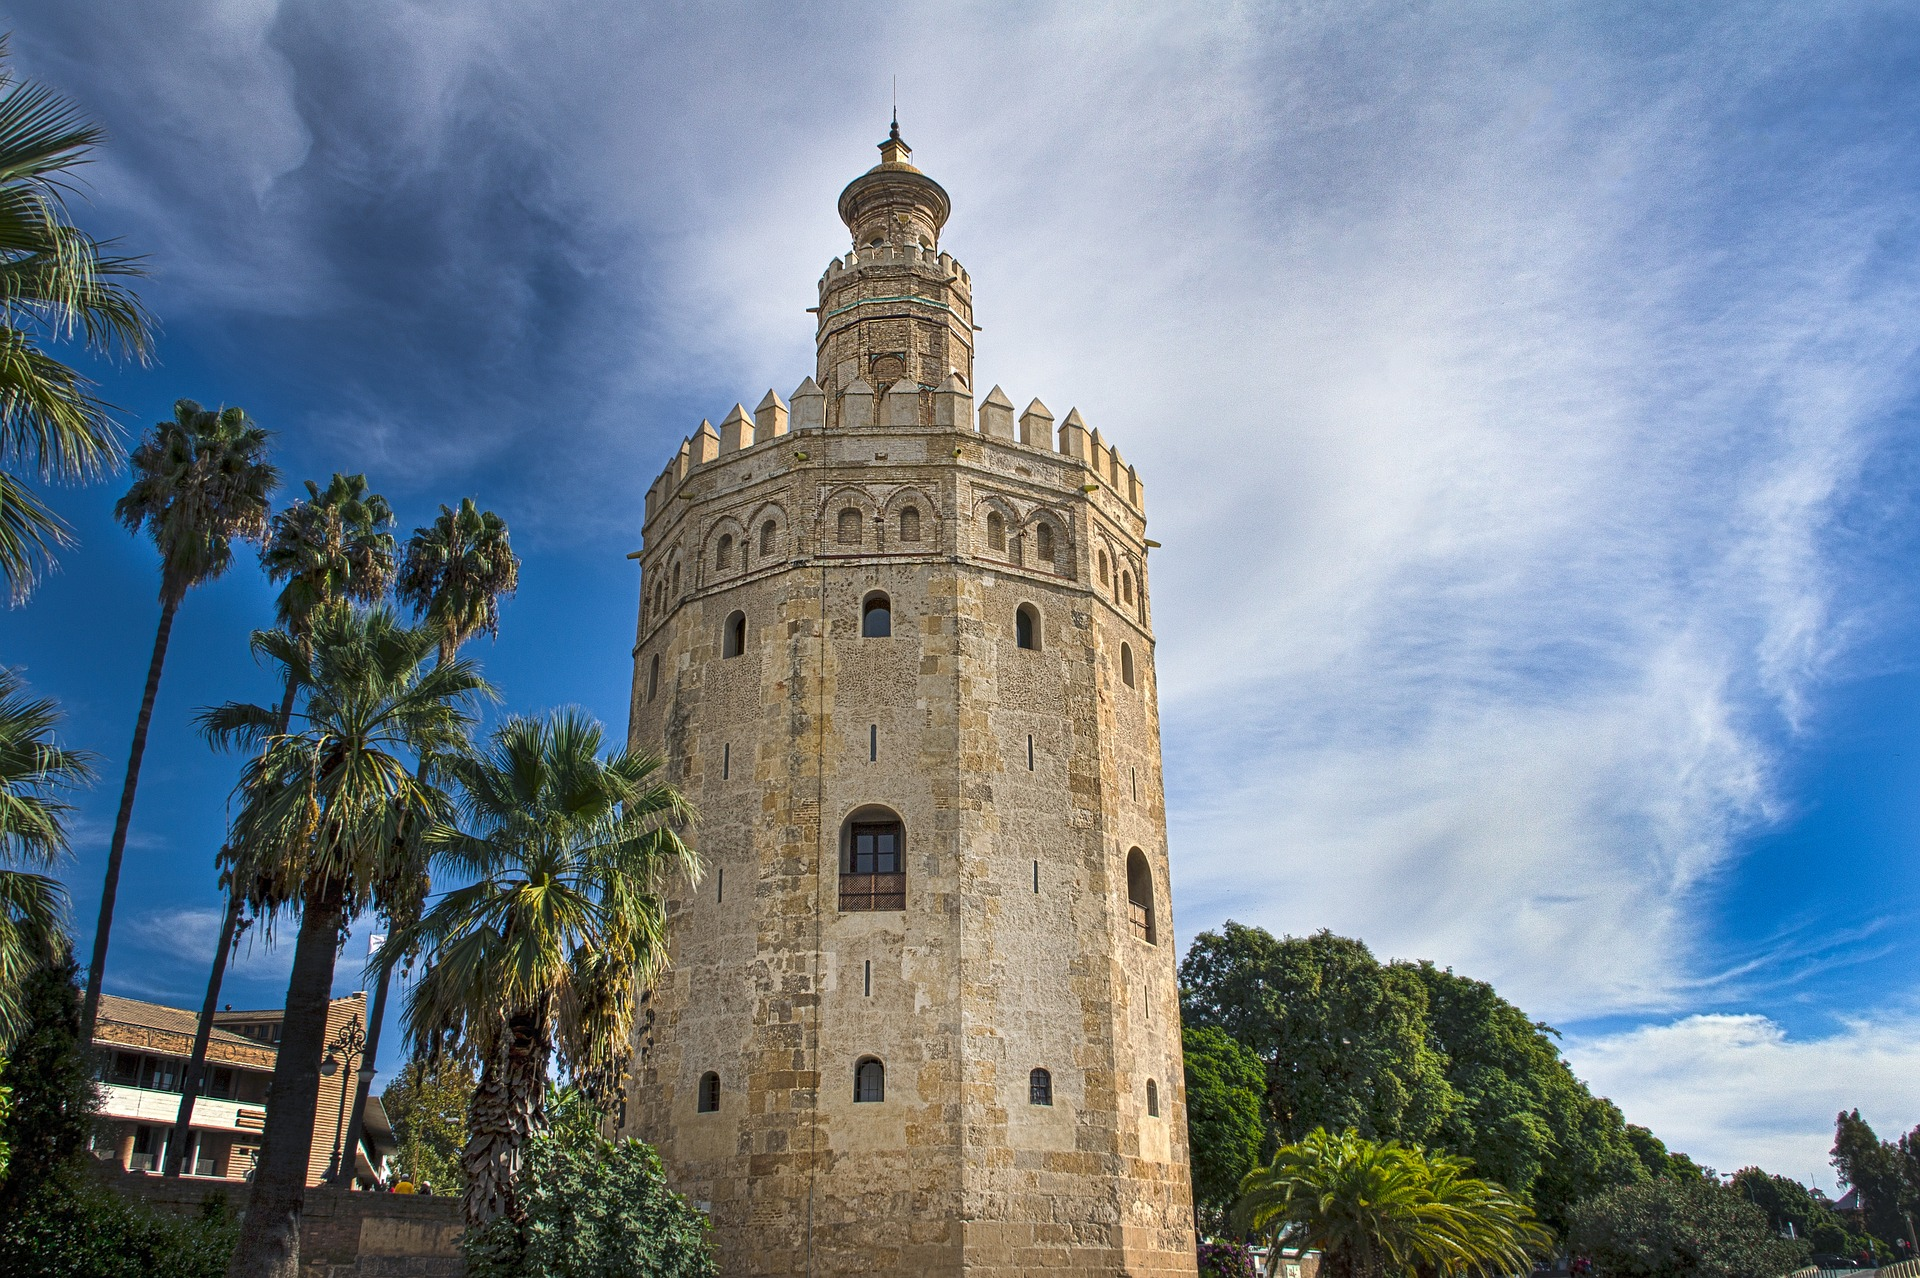 Historic site in Spain, rent a boat in Spain